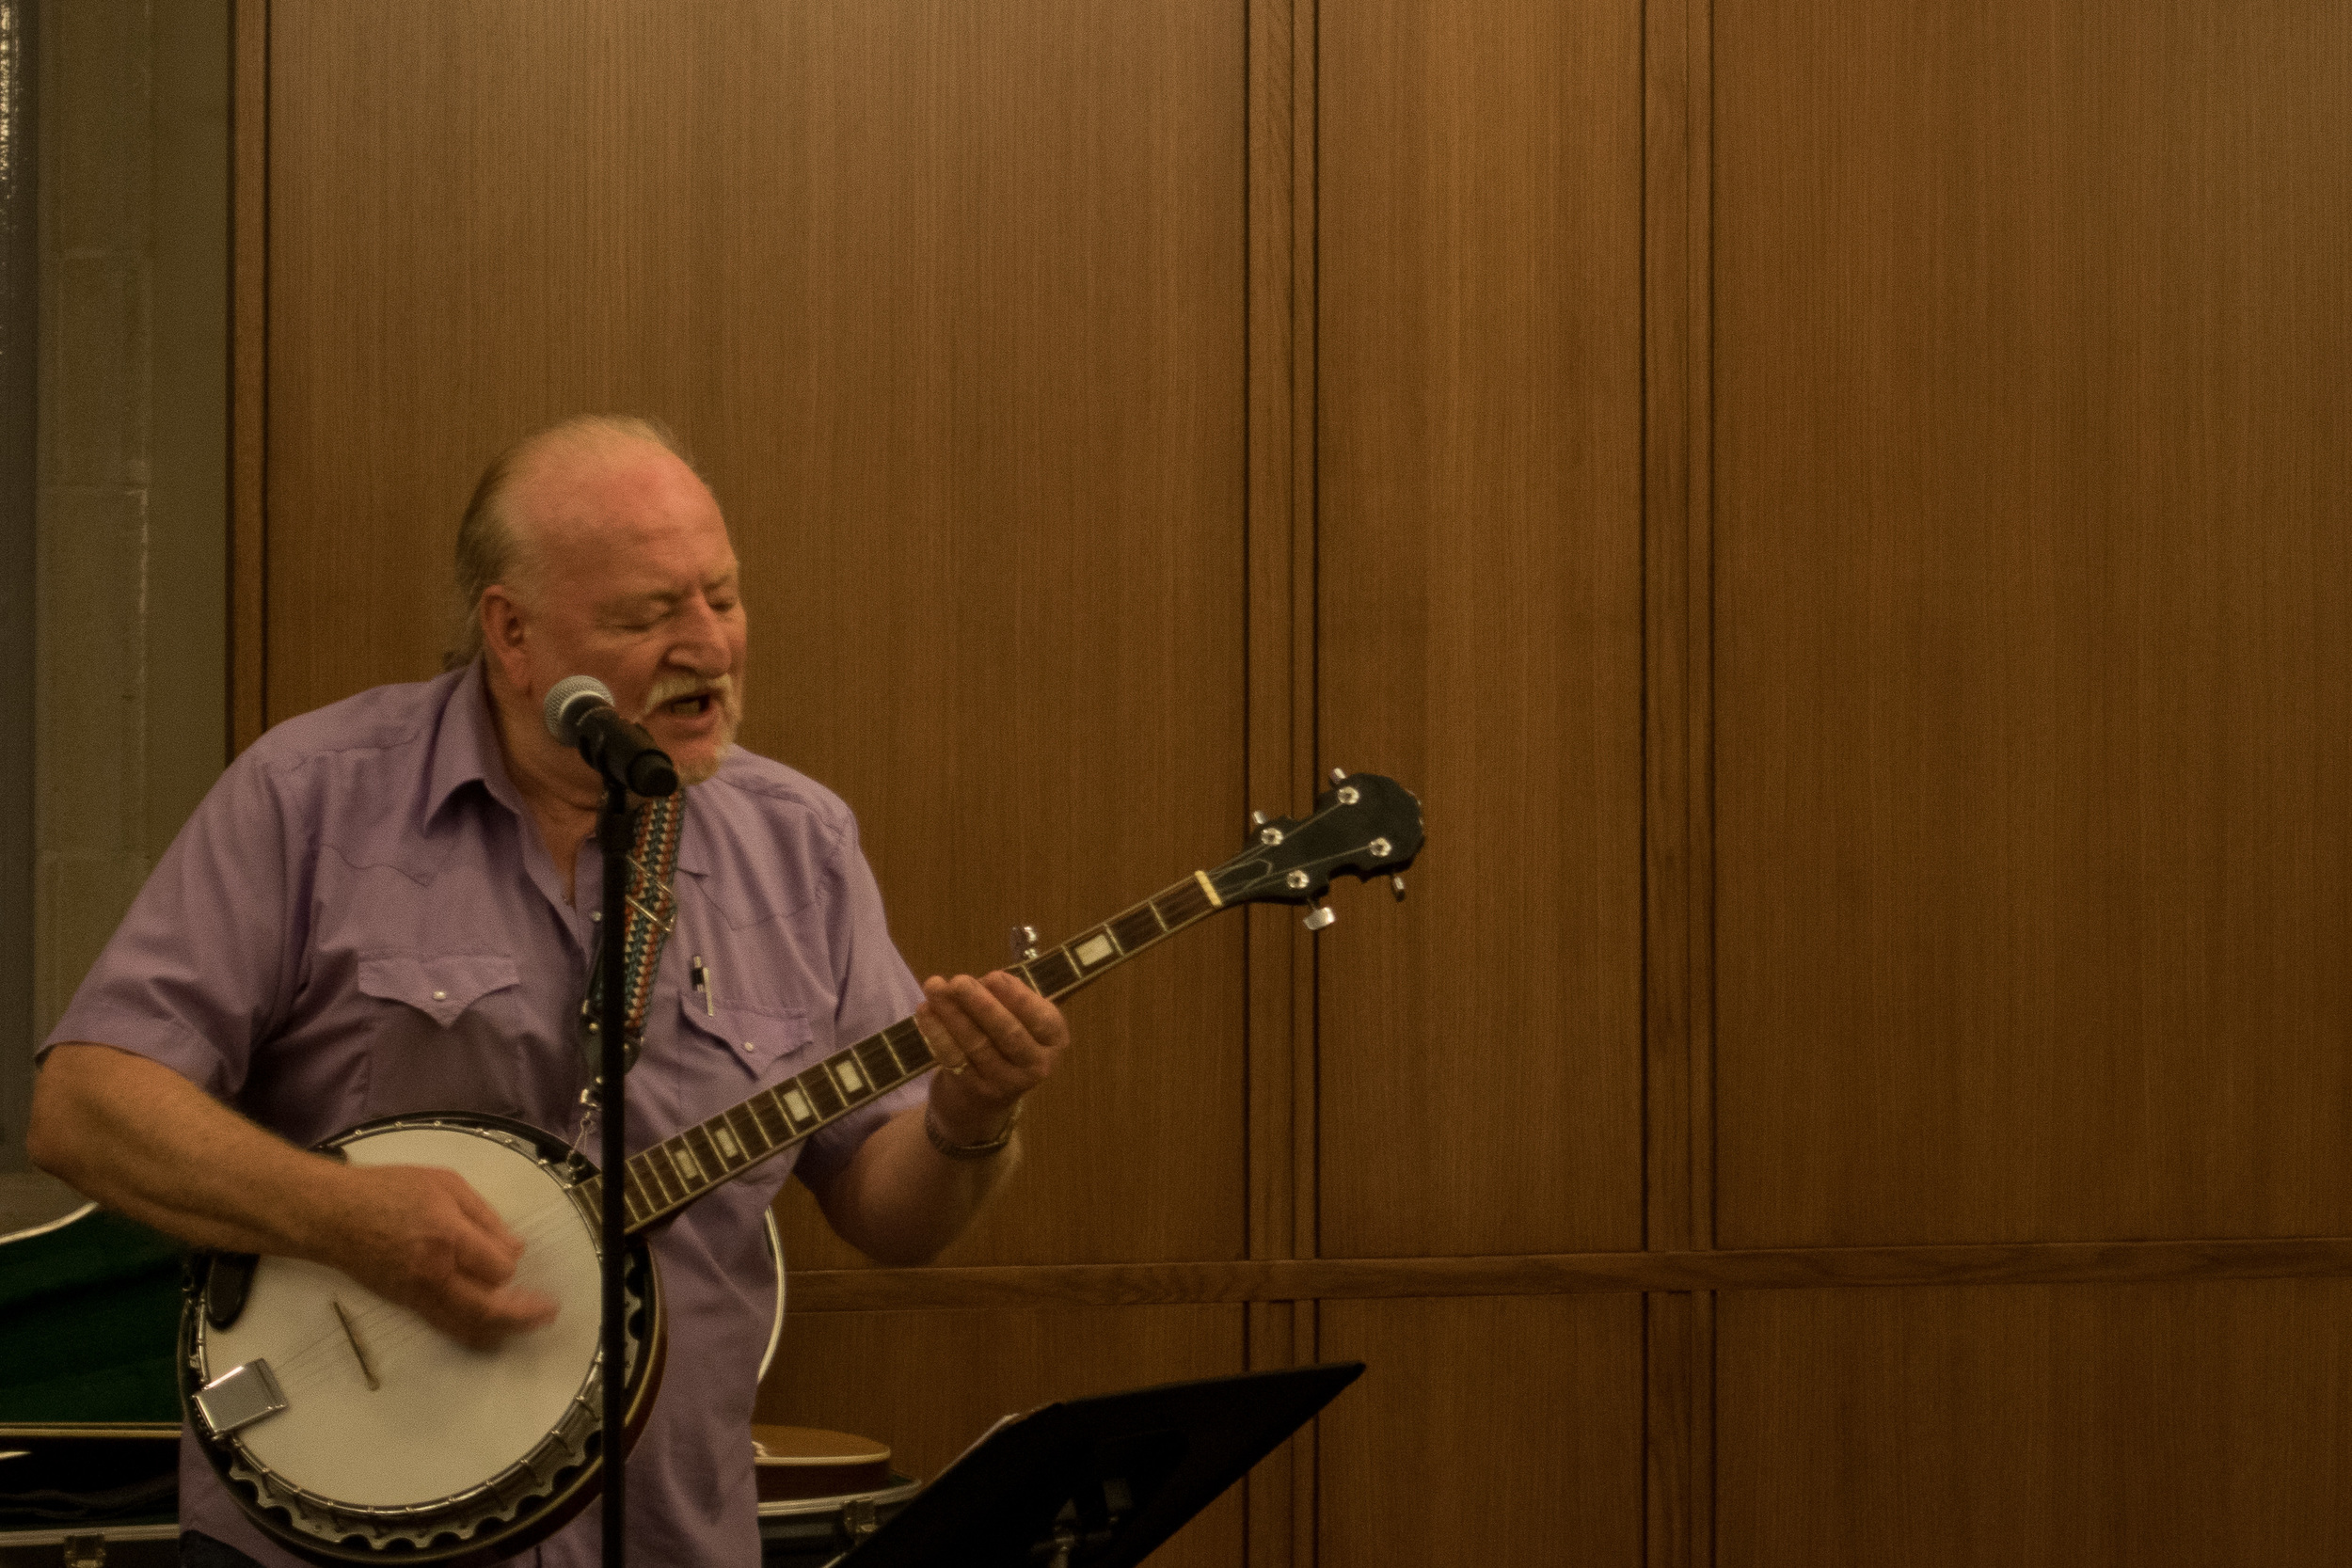 Terry McKinney performing at the Rubenstein Library